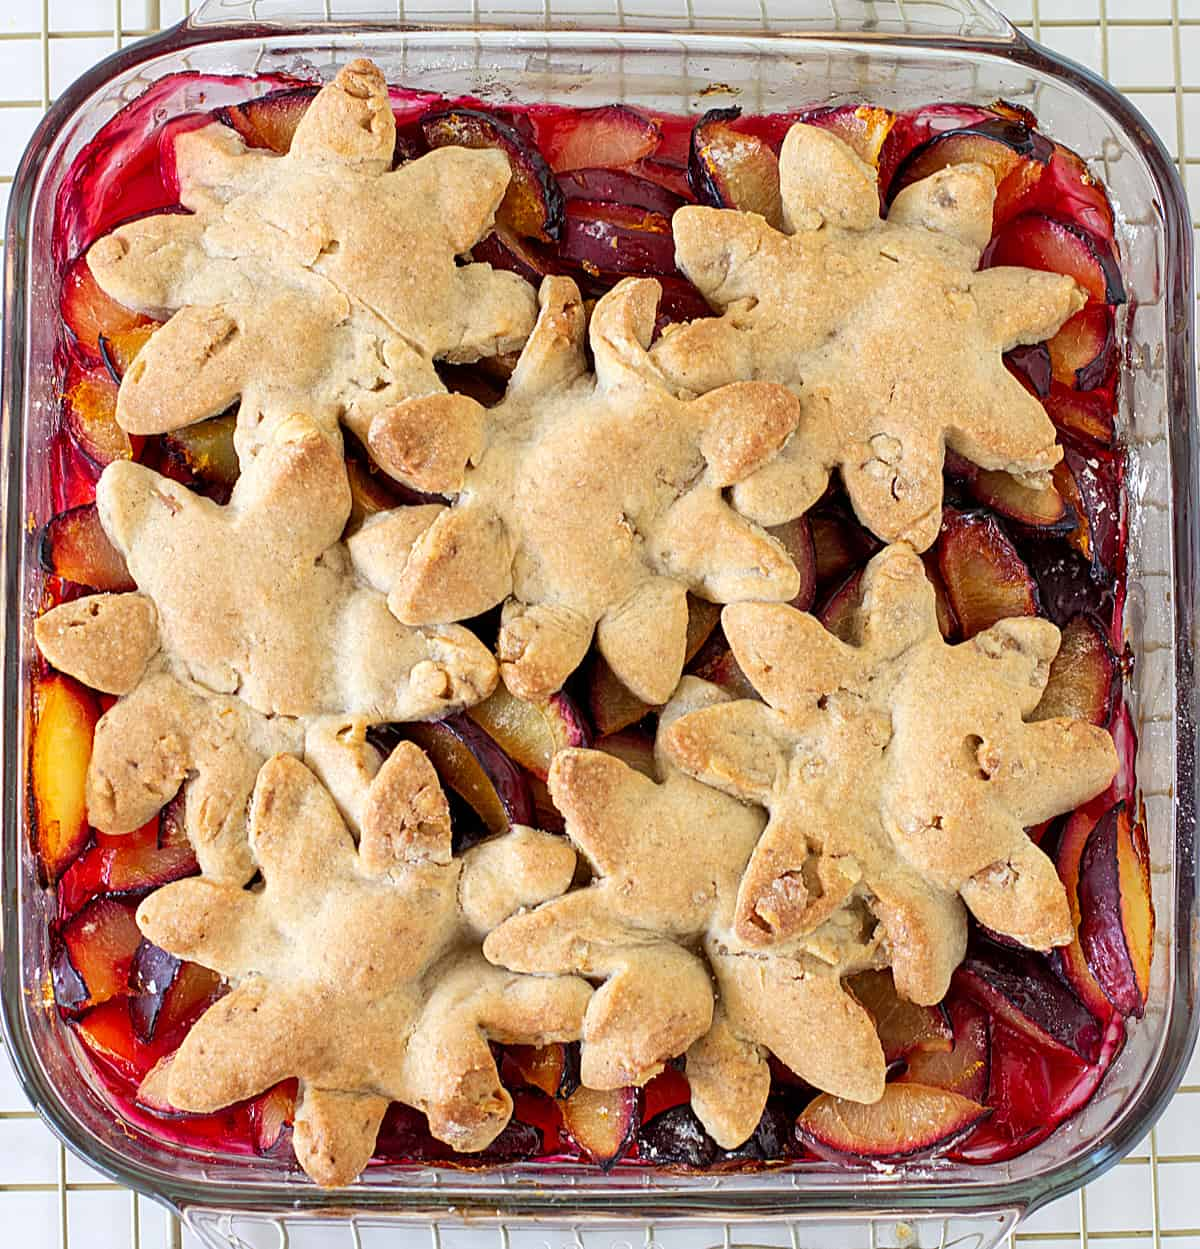 Baked plum cobbler with flour dough cut-outs on square glass dish